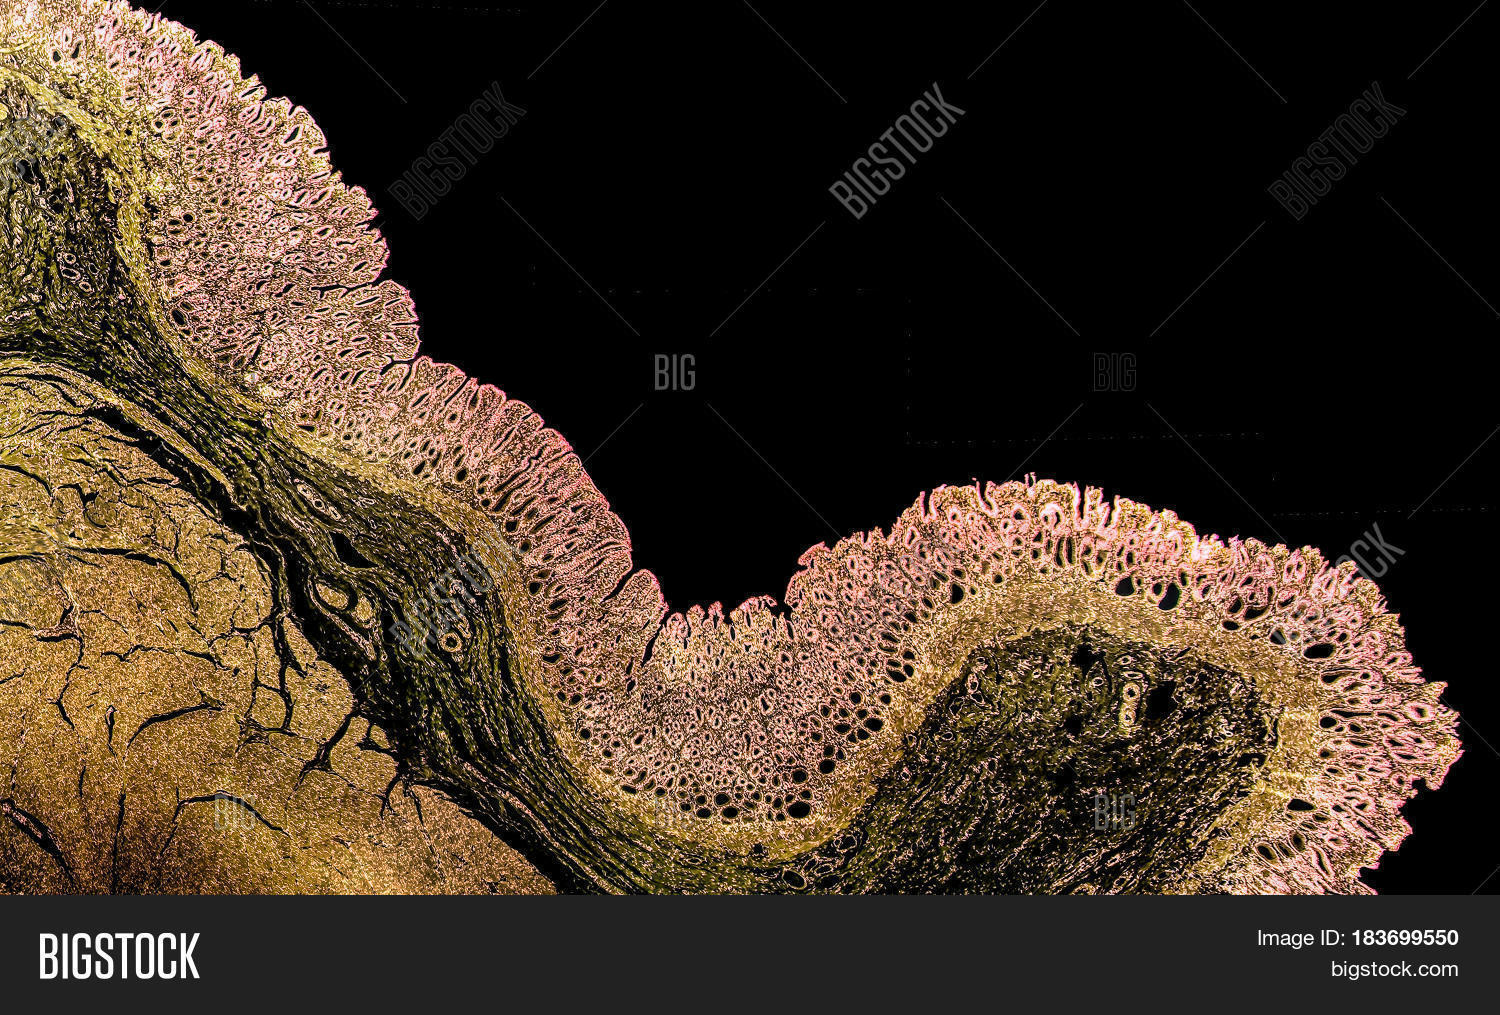 Cross Section Normal Image Photo Free Trial Bigstock